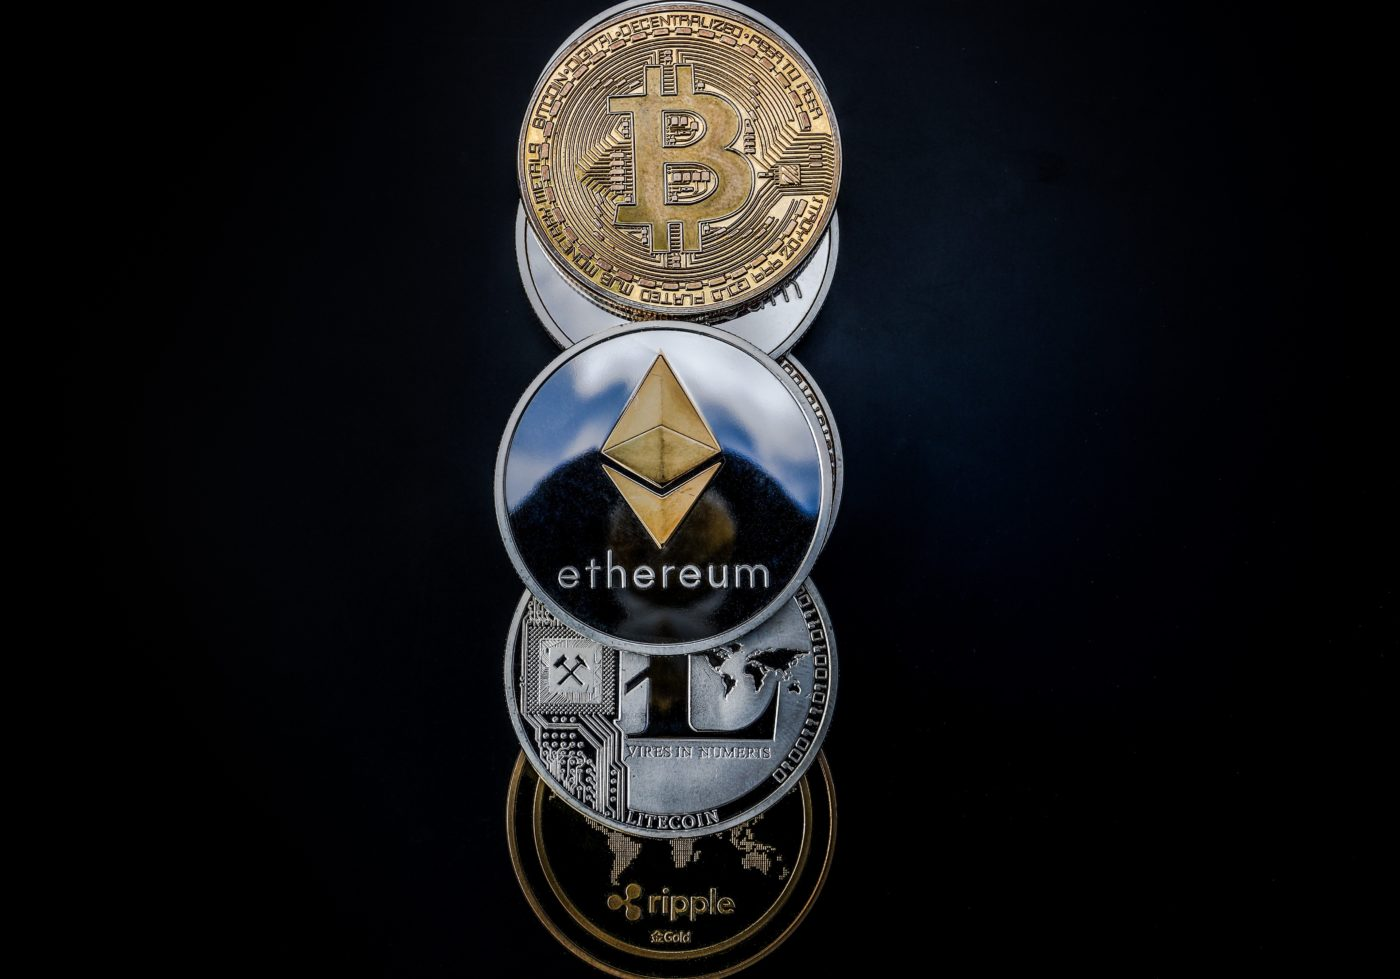 How to Buy Ethereum (ETH) in Australia with AUD?